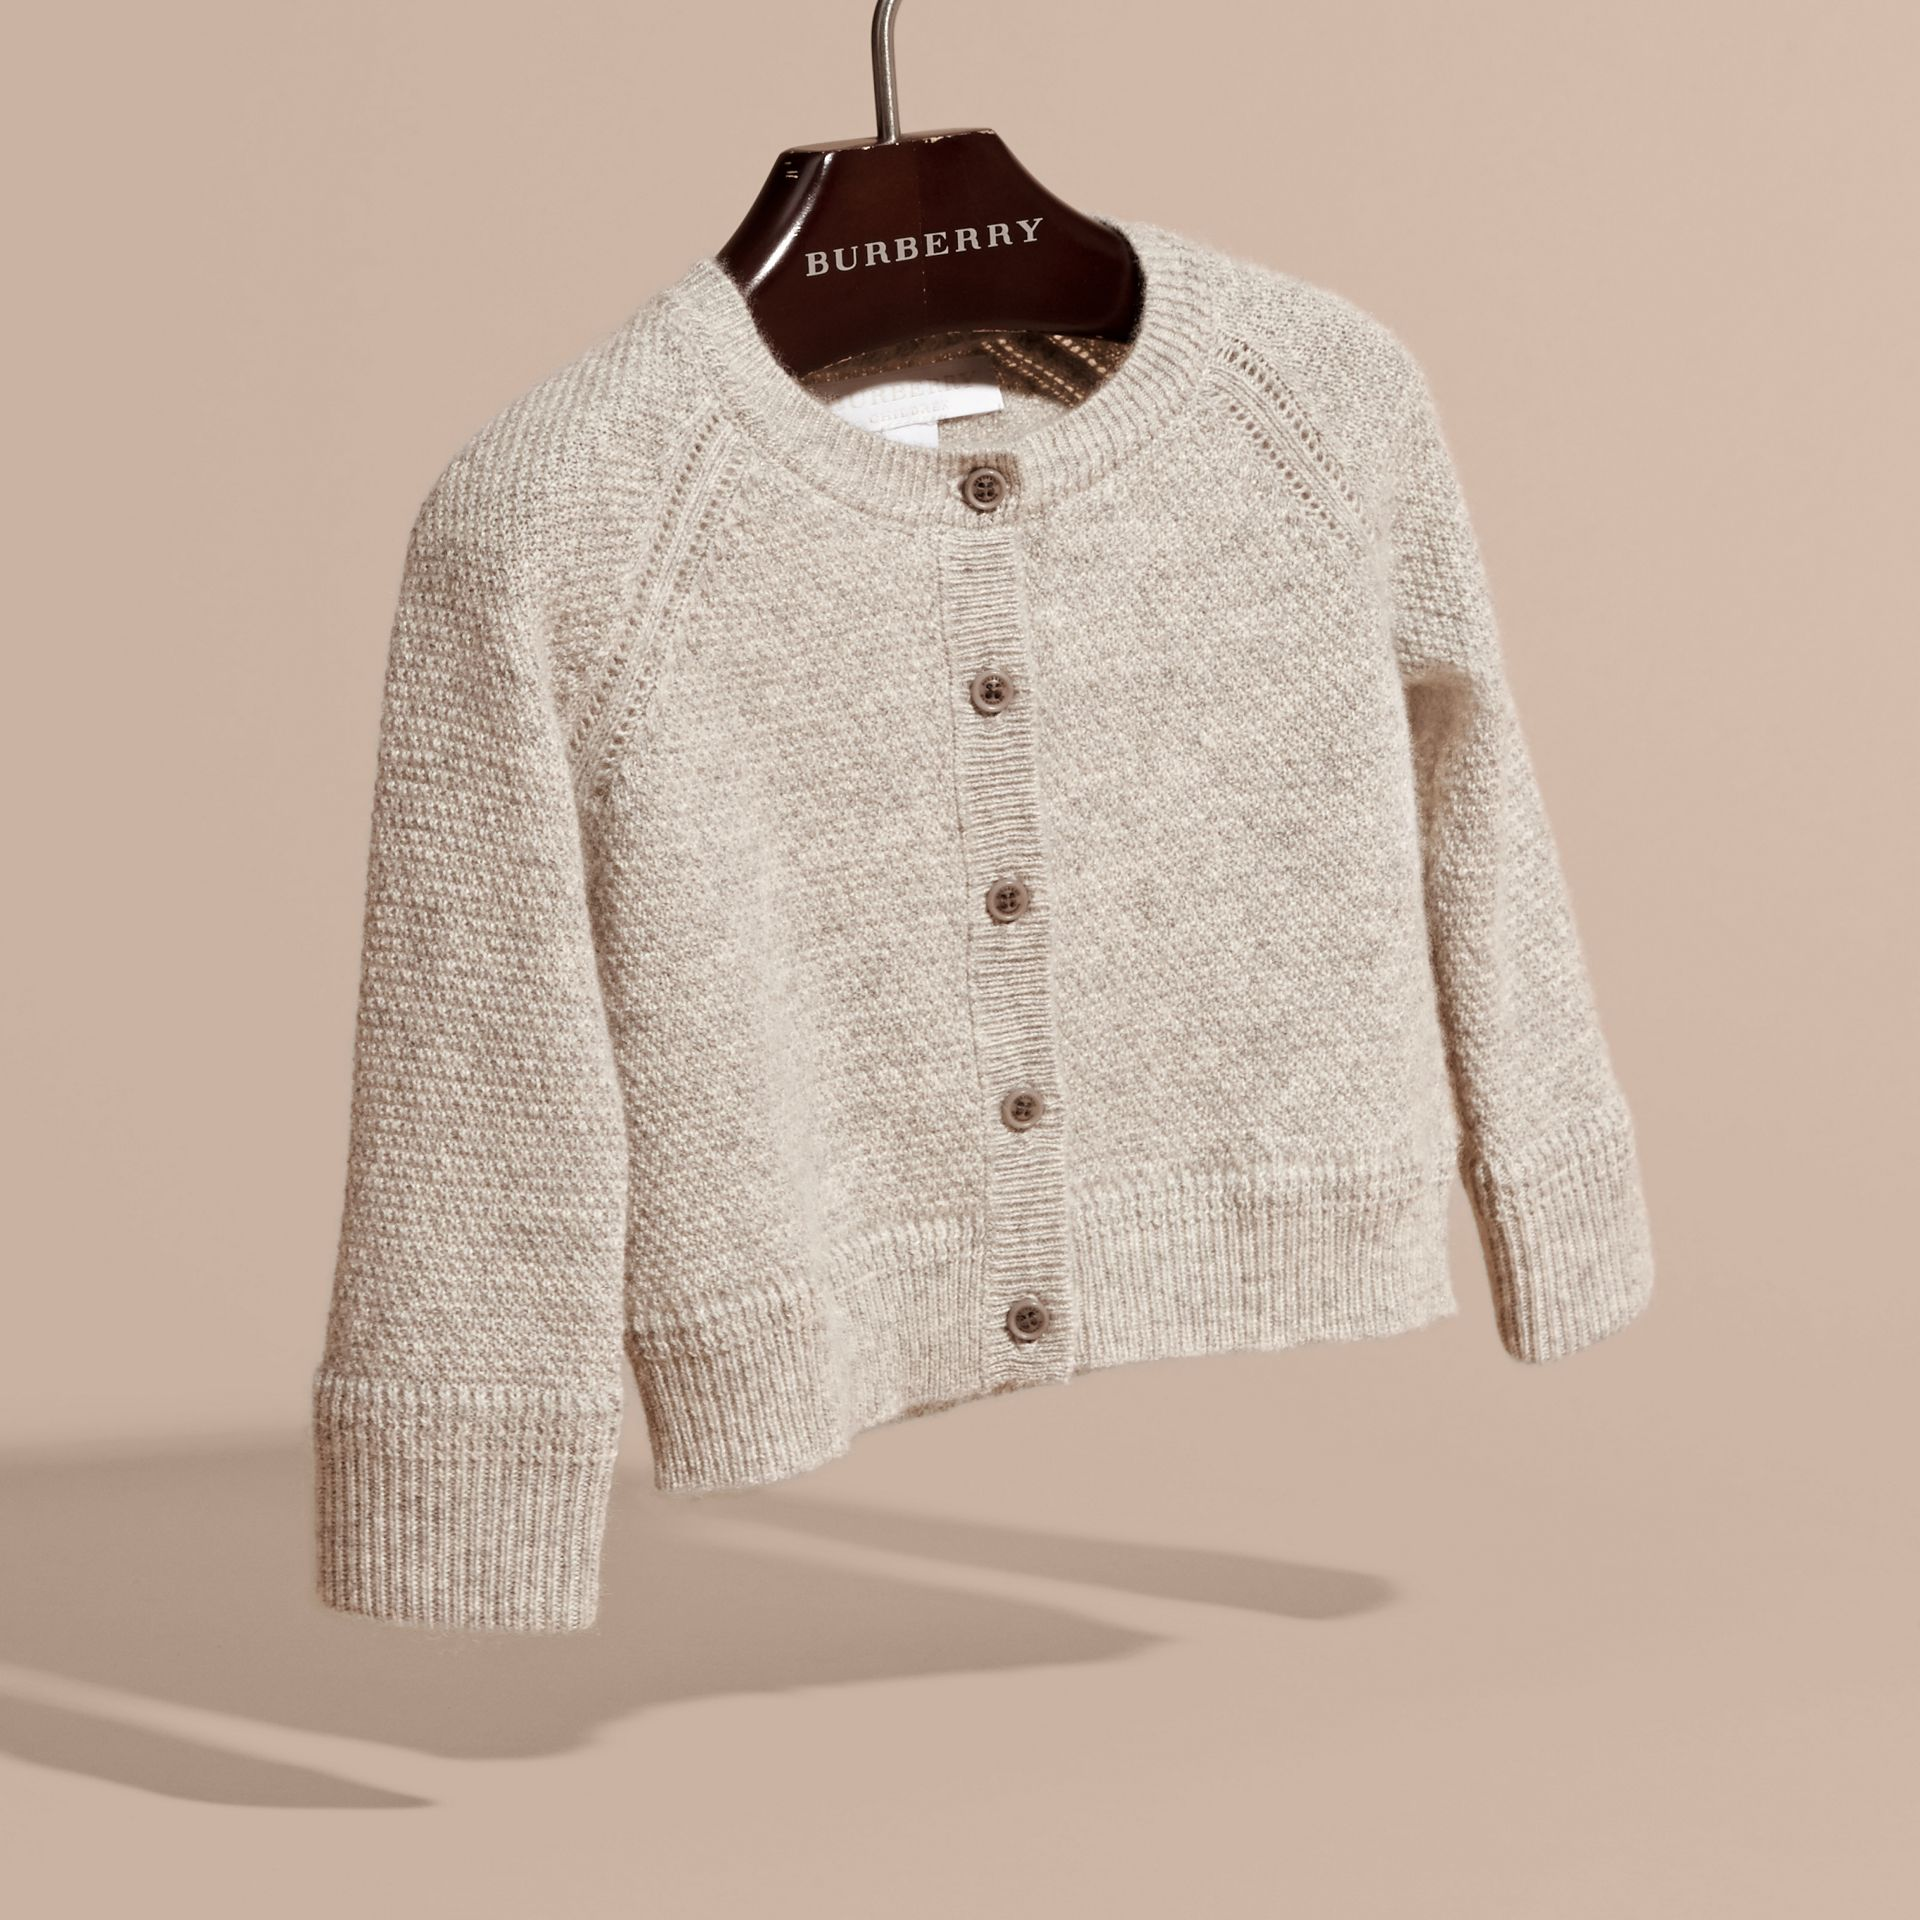 Textured Knit Cashmere Cardigan in Light Grey Melange | Burberry Australia - gallery image 3